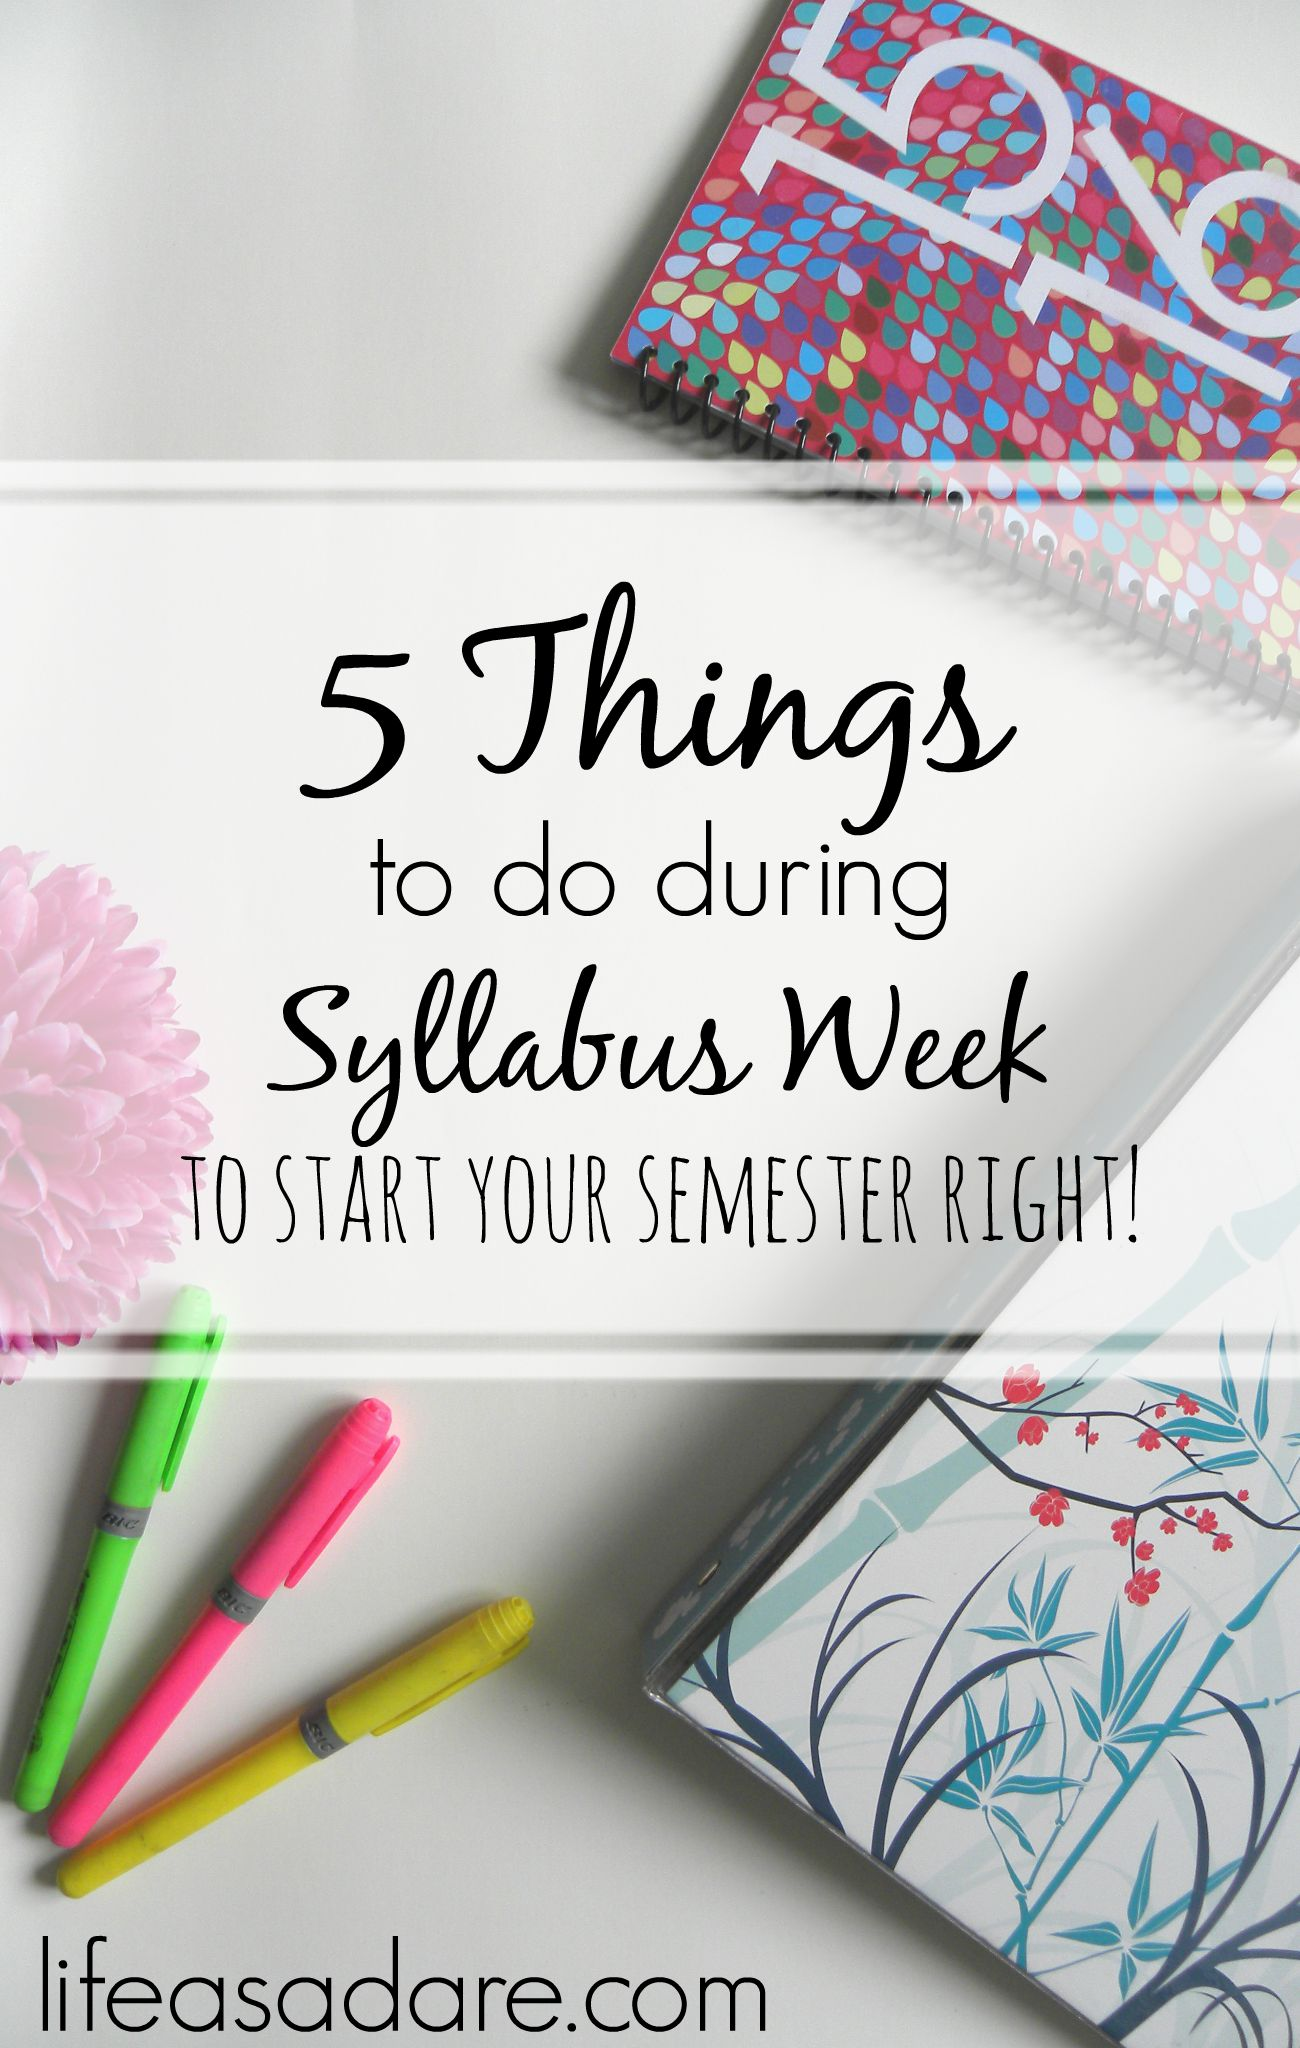 Syllabus week is a great opportunity to get your semester started on the right foot! Here are 5 things every college student should do during syllabus week!